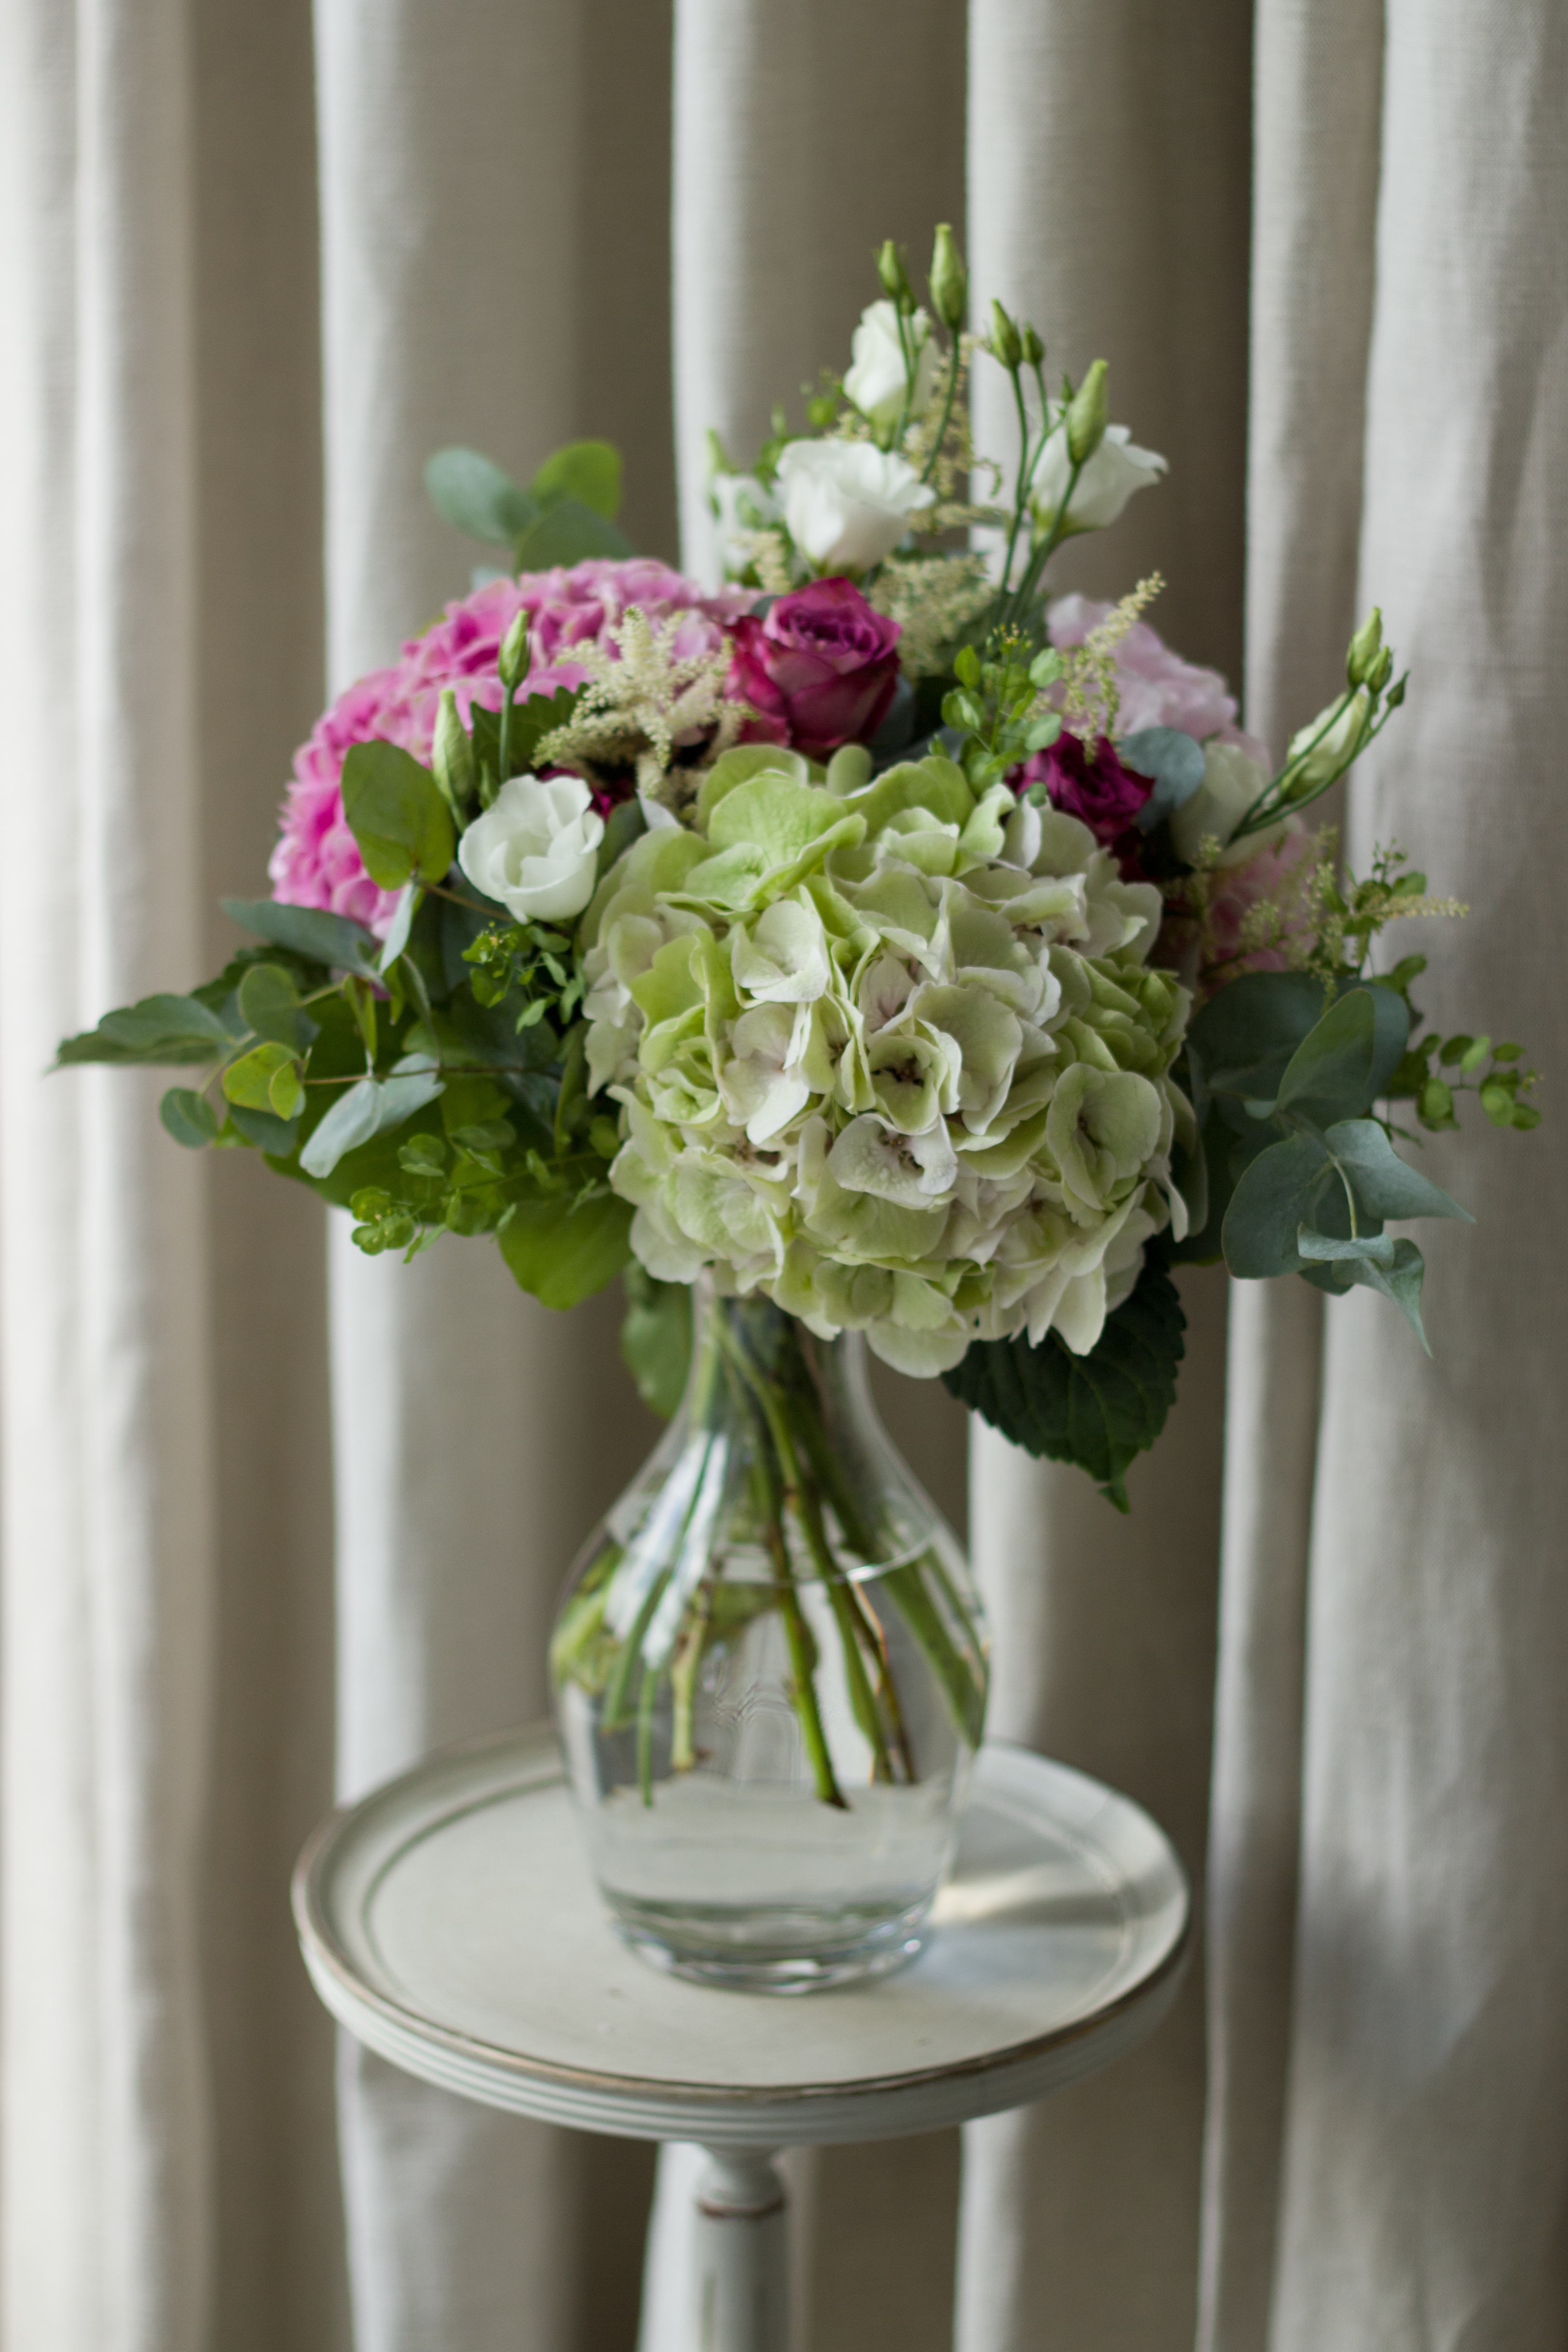 Hydrangea and rose vase